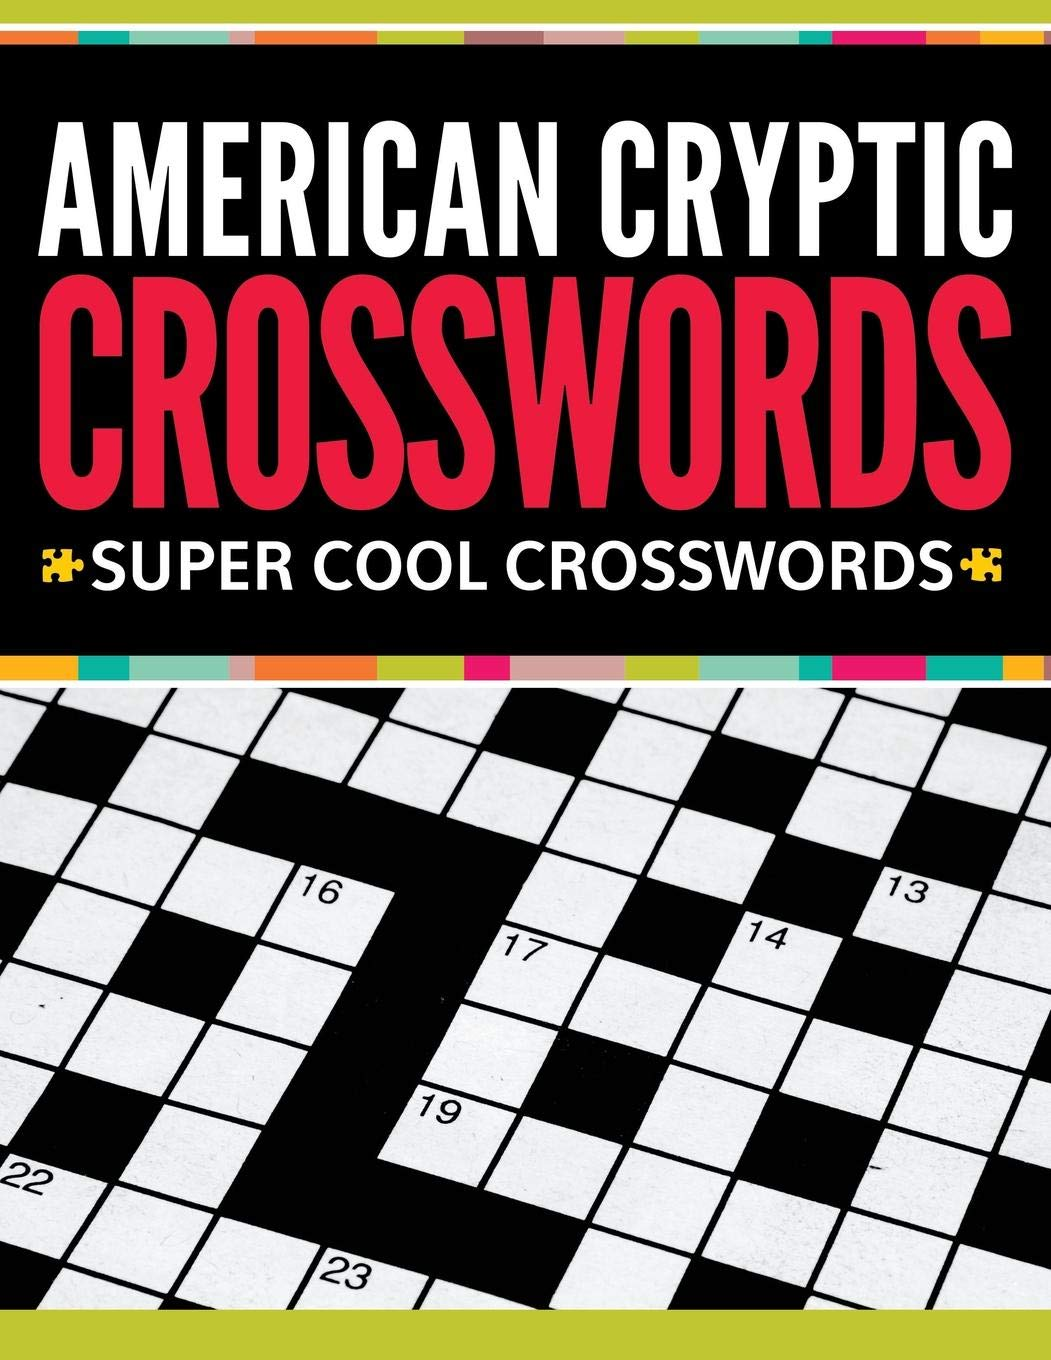 picture regarding Cryptic Crosswords Printable named American Cryptic Crosswords: Tremendous Great Crosswords: Instant